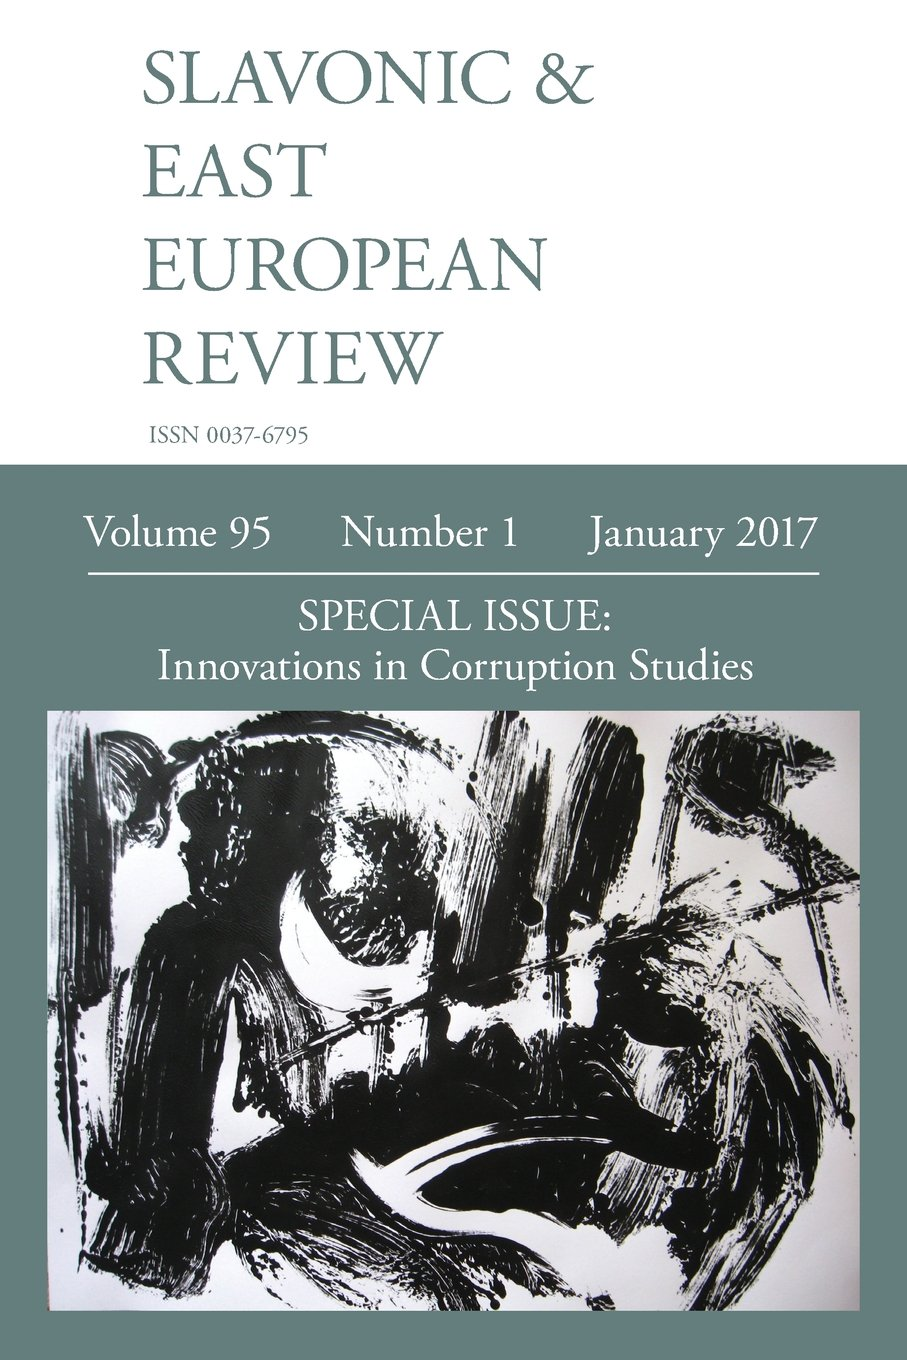 Download Slavonic & East European Review (95: 1) January 2017 pdf